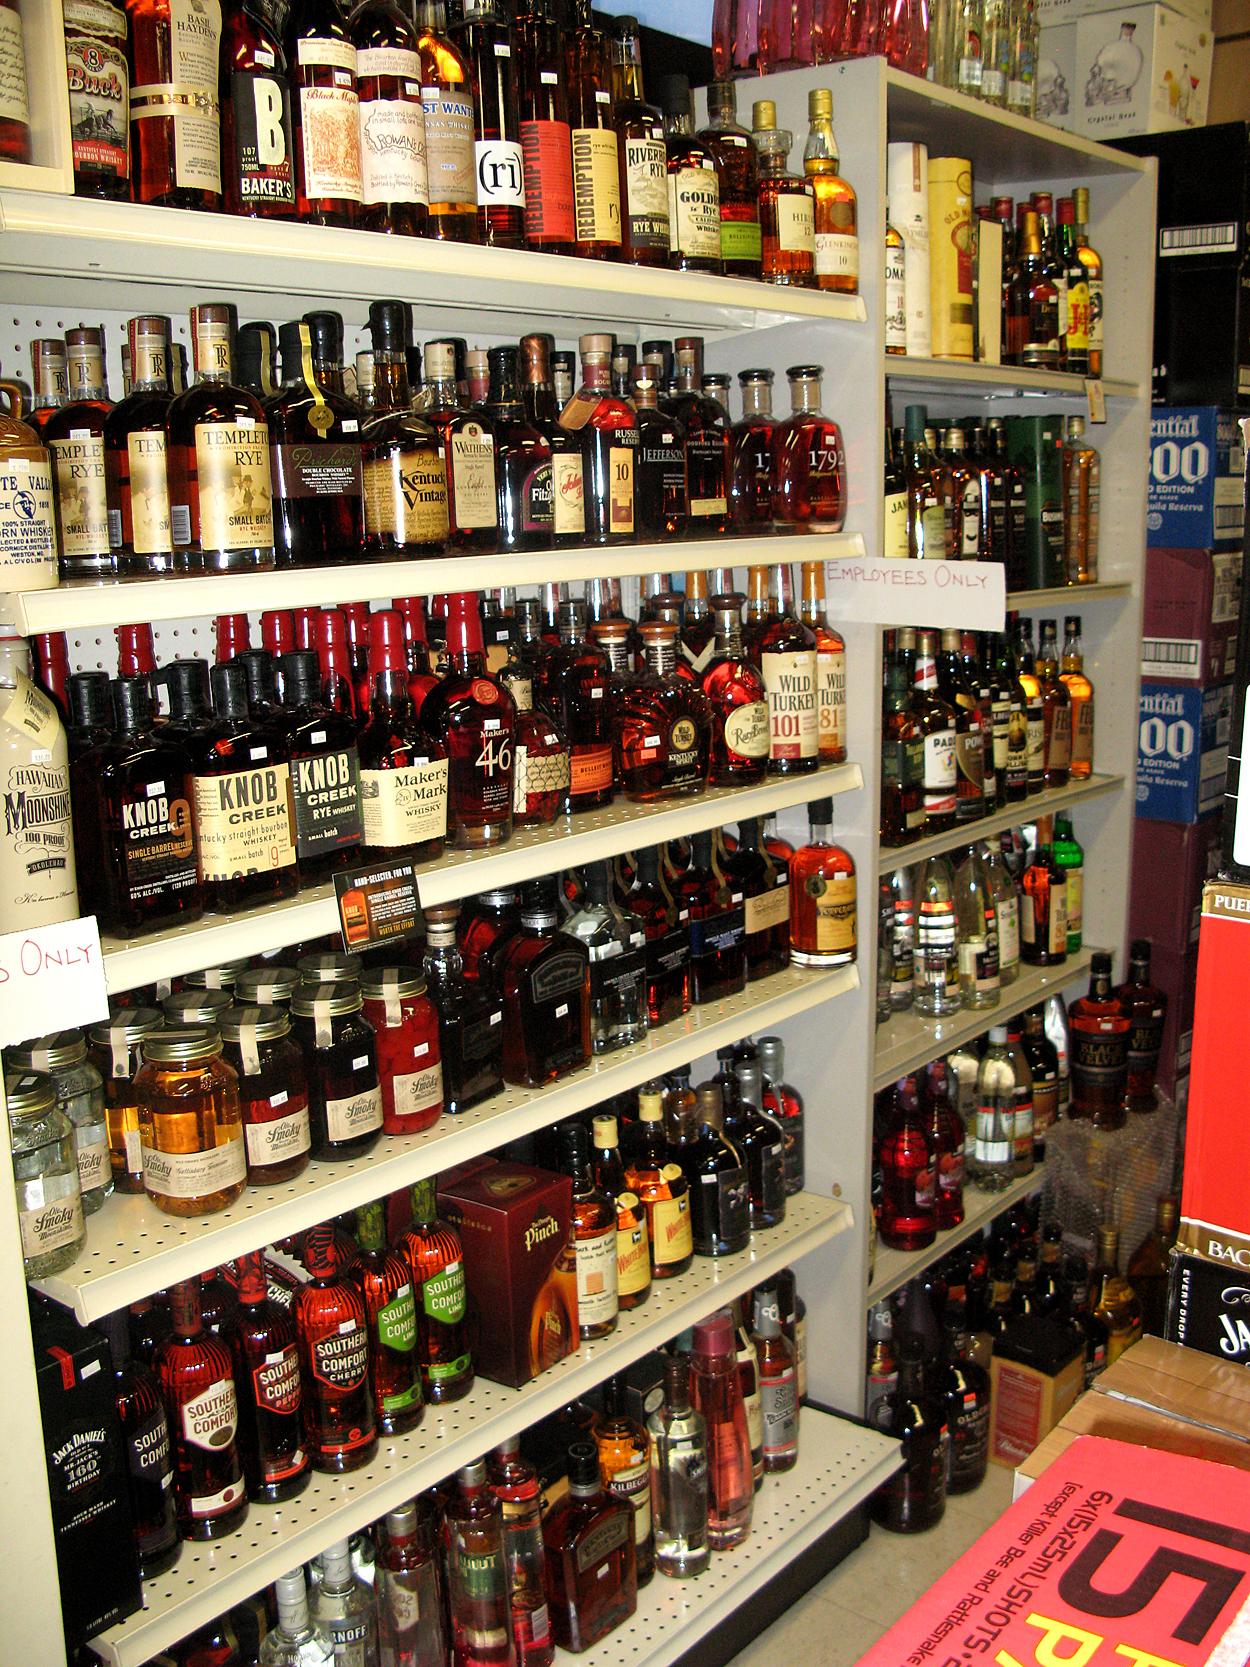 17 Hundred Bottles of Rum on the Wall at Ewa Pantry – Tasty Island